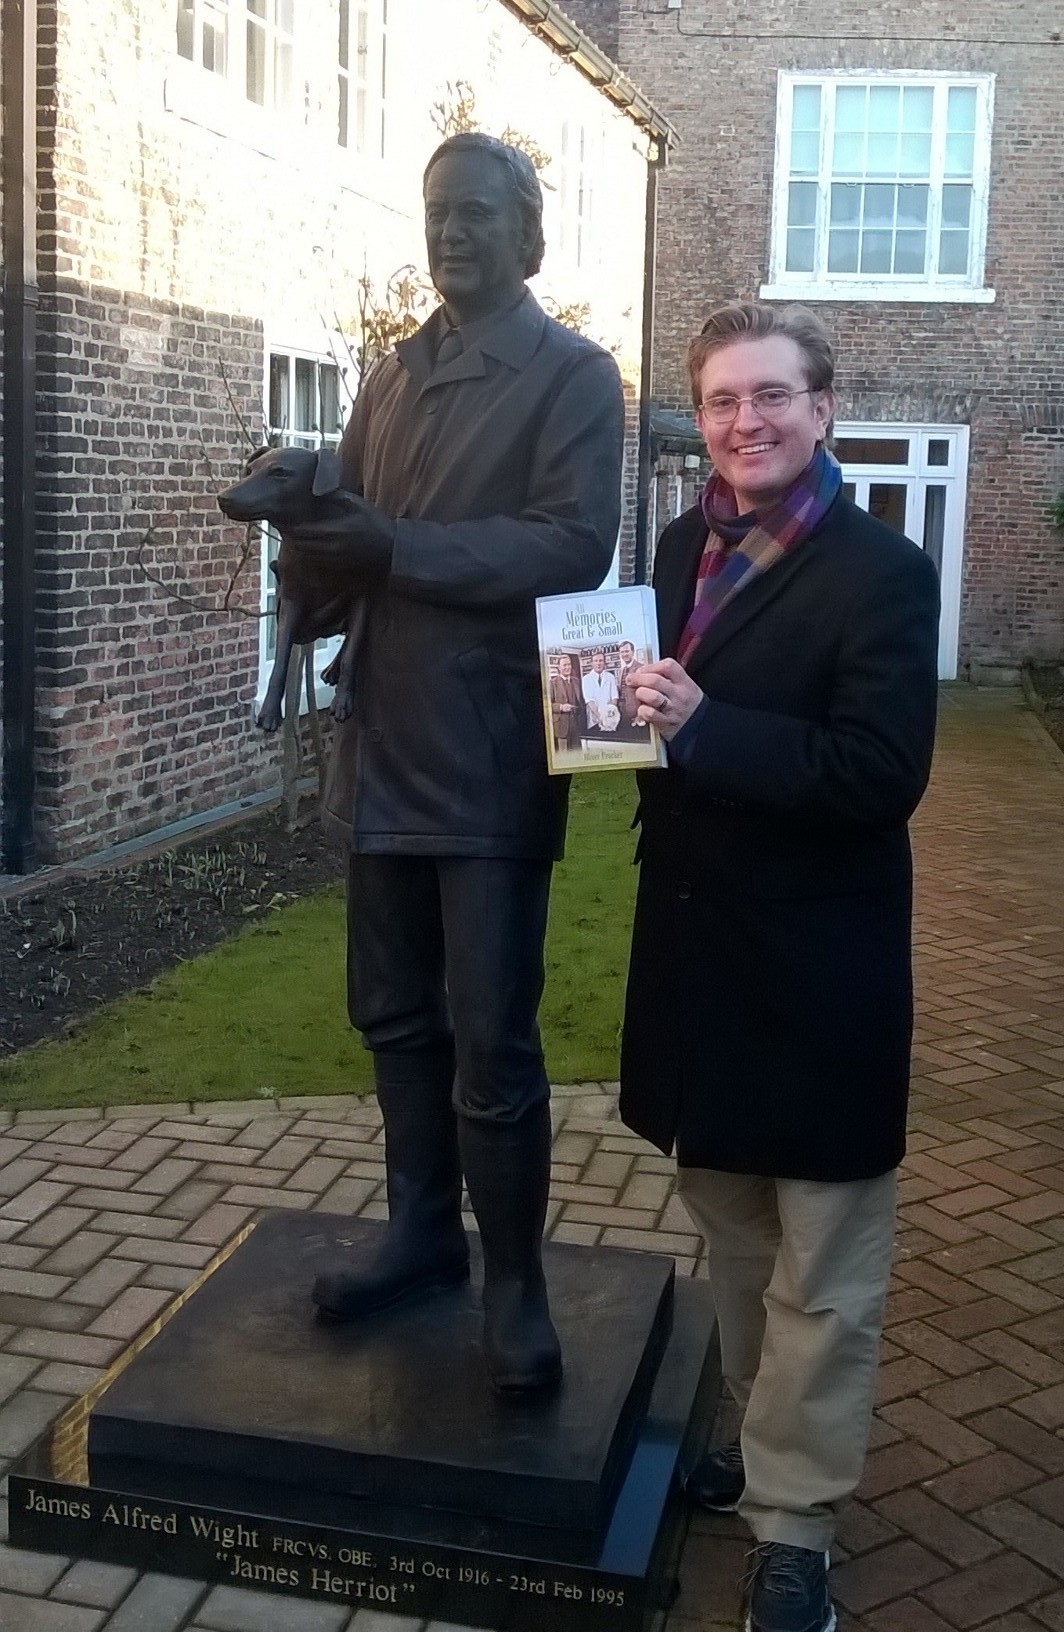 Author of All Memories Great and Small Oliver Crocker, pictured with the statue of Alf Wight (James Herriot) at The World of James Herriot Museum in Thirsk, North Yorkshire